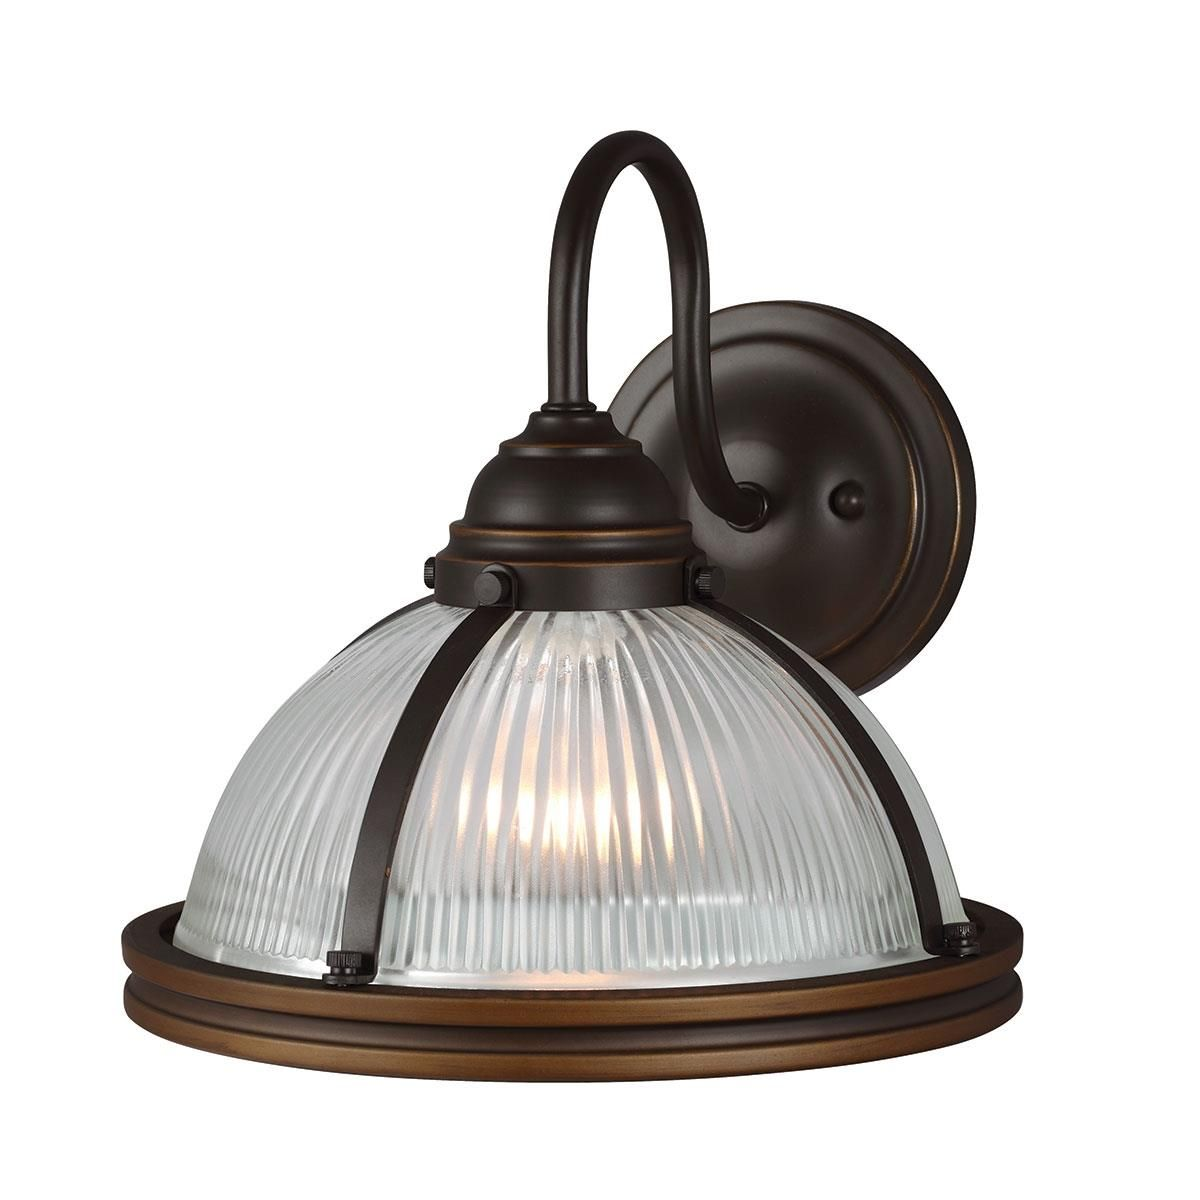 Sea Gull Lighting Sea Pratt Street Sconces Bathroom Vanity Light - Bring an elegant vintage style to your bathroom with this Sea Gull Lighting Sea Pratt ...  sc 1 st  Pinterest & Sea Gull Lighting 41060-715 Shipped Direct | Sucky lights ...